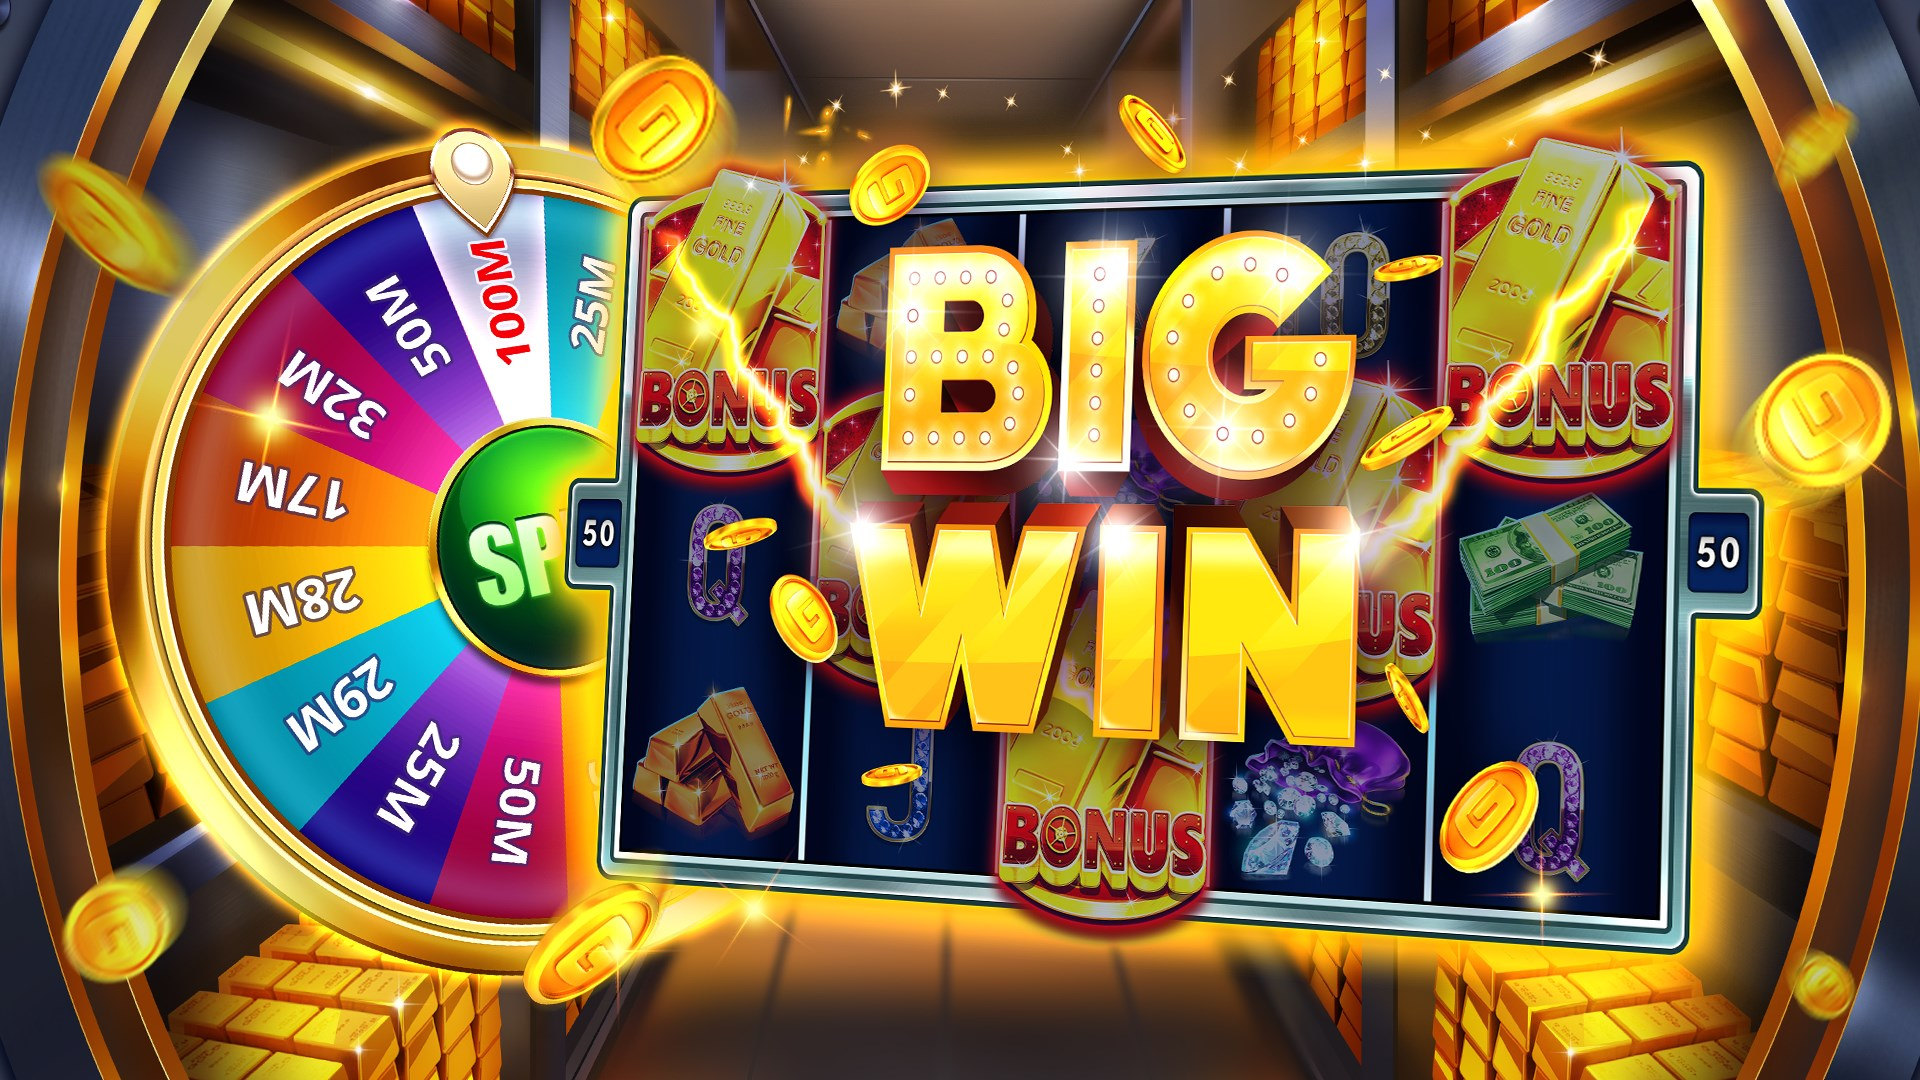 Which Online Casino Games Do You Prefer To Play?